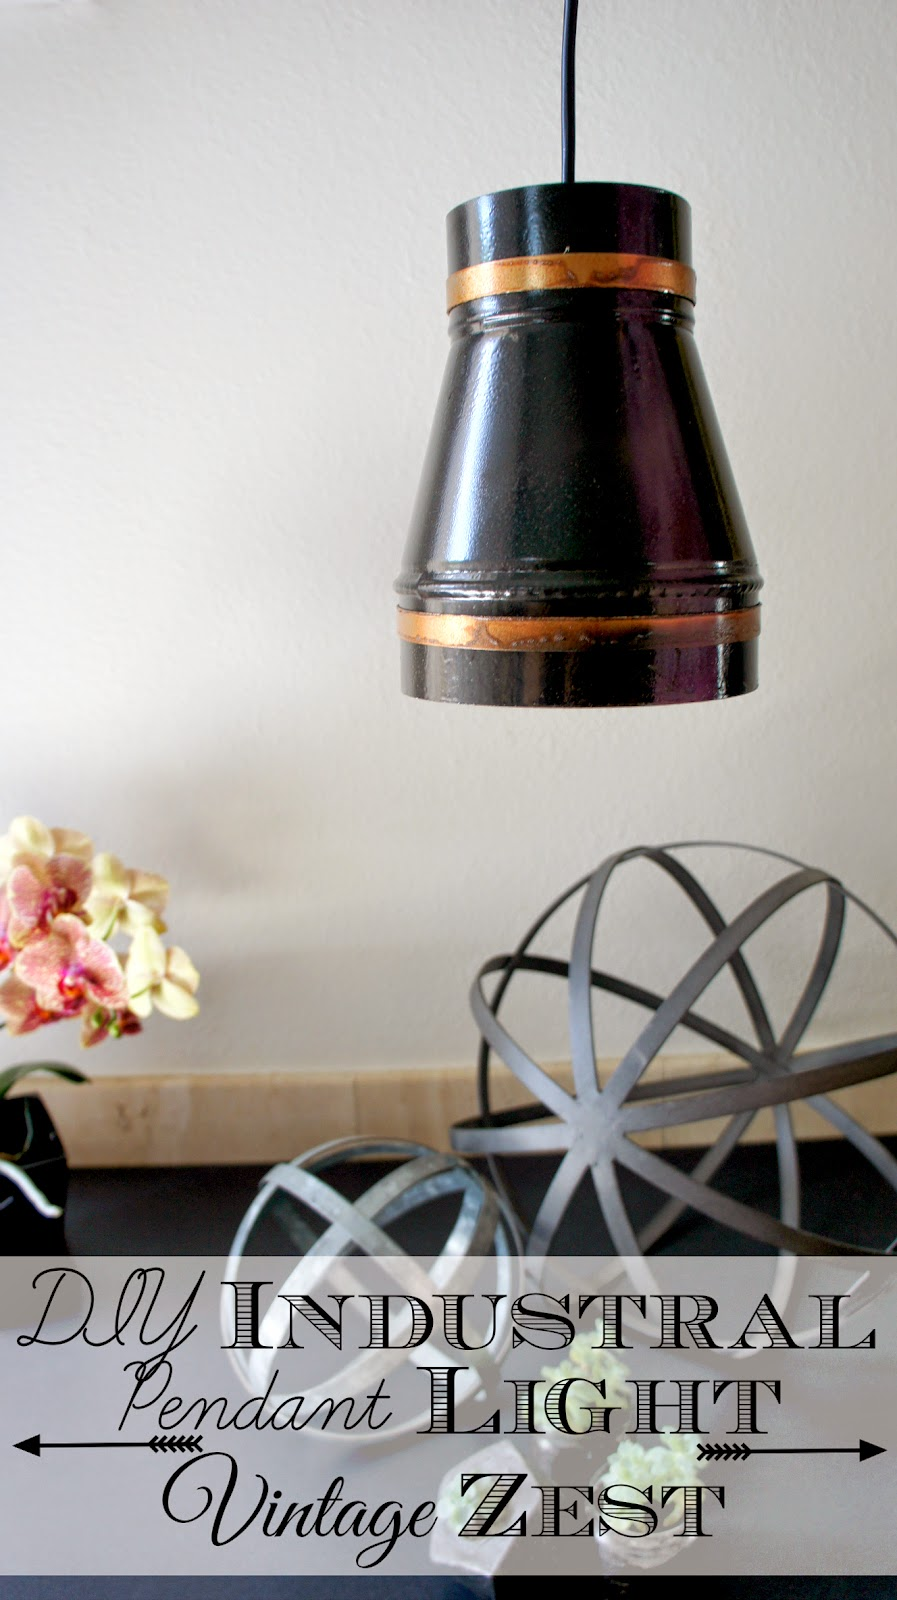 DIY Industrial Pendant Light with LED Power! on Diane's Vintage Zest! #LEDSavings #CollectiveBias #shop